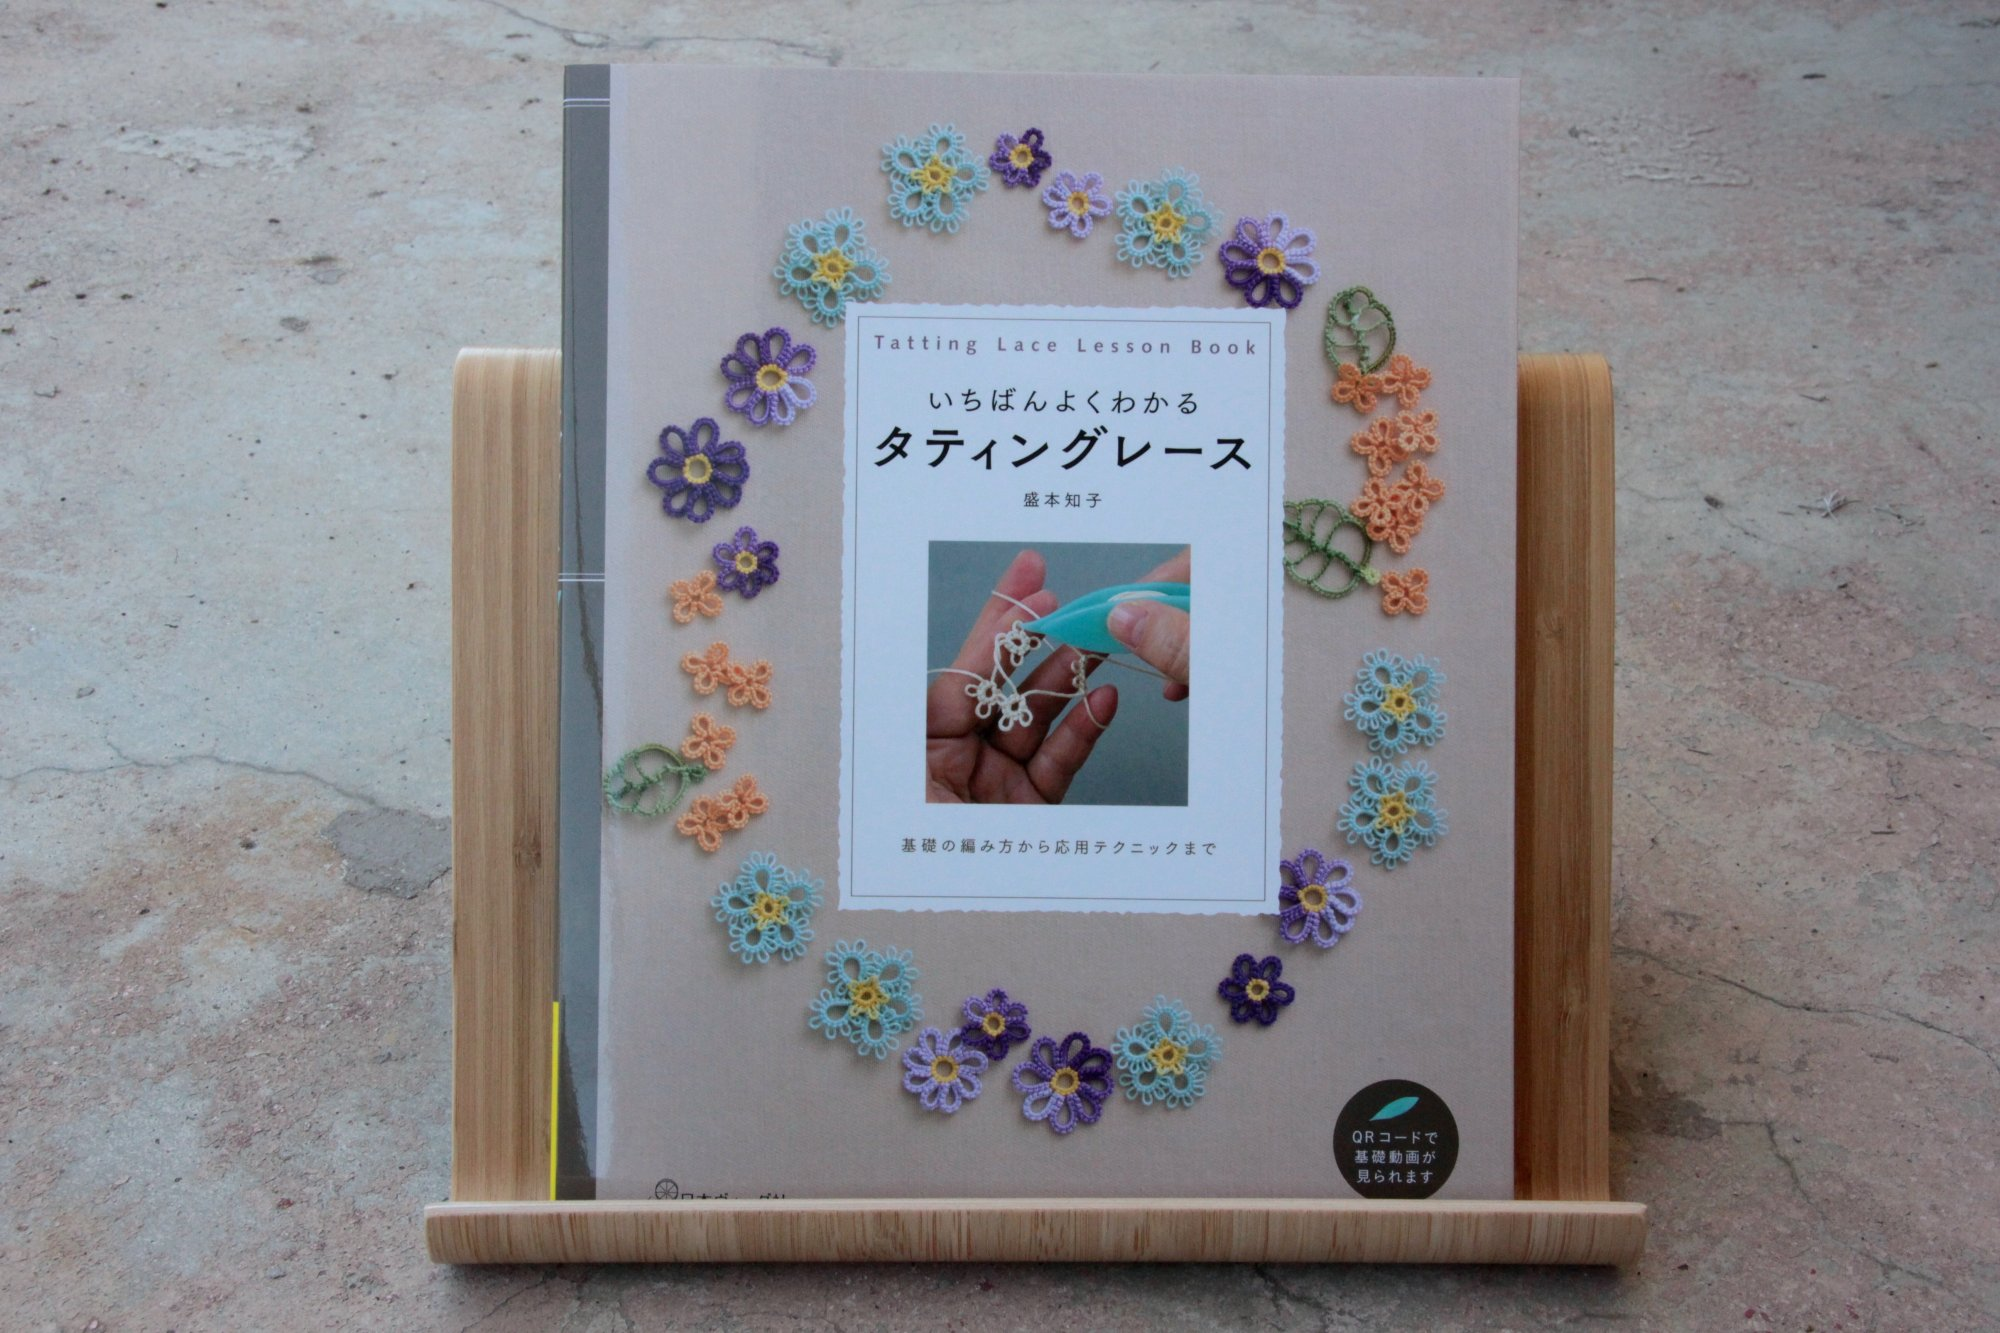 Tatting Lace Lesson Book by Sumi Fujishige (Japanese)